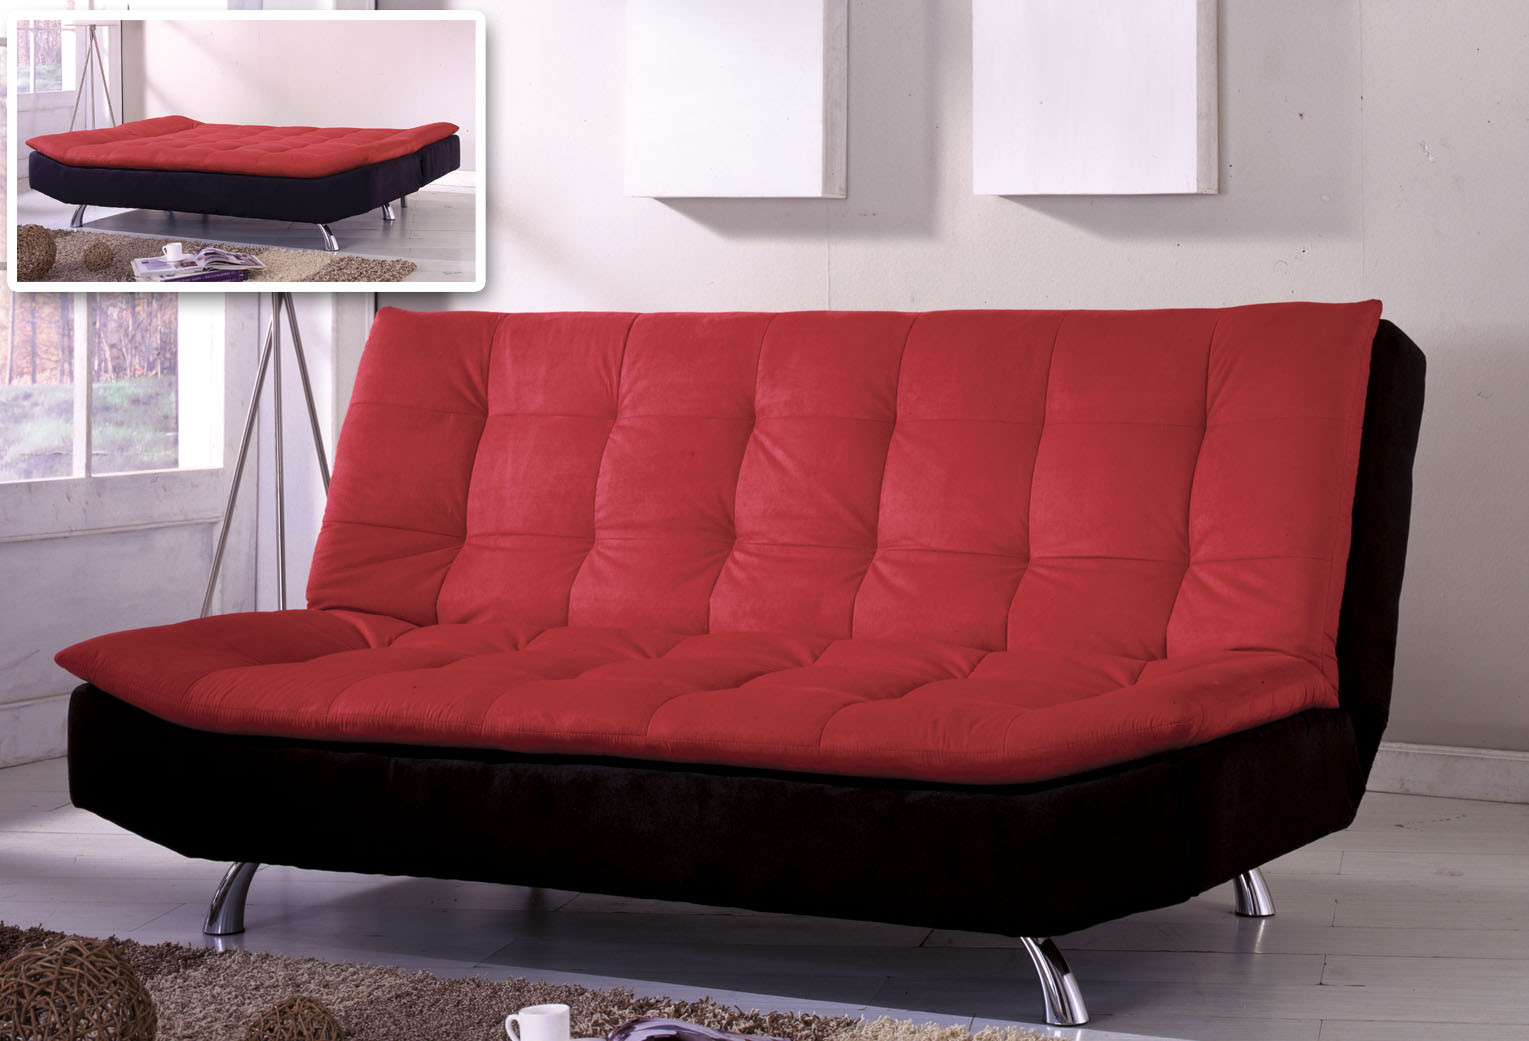 Futon sofa bed sophisticated furniture inoutinterior Couches bed